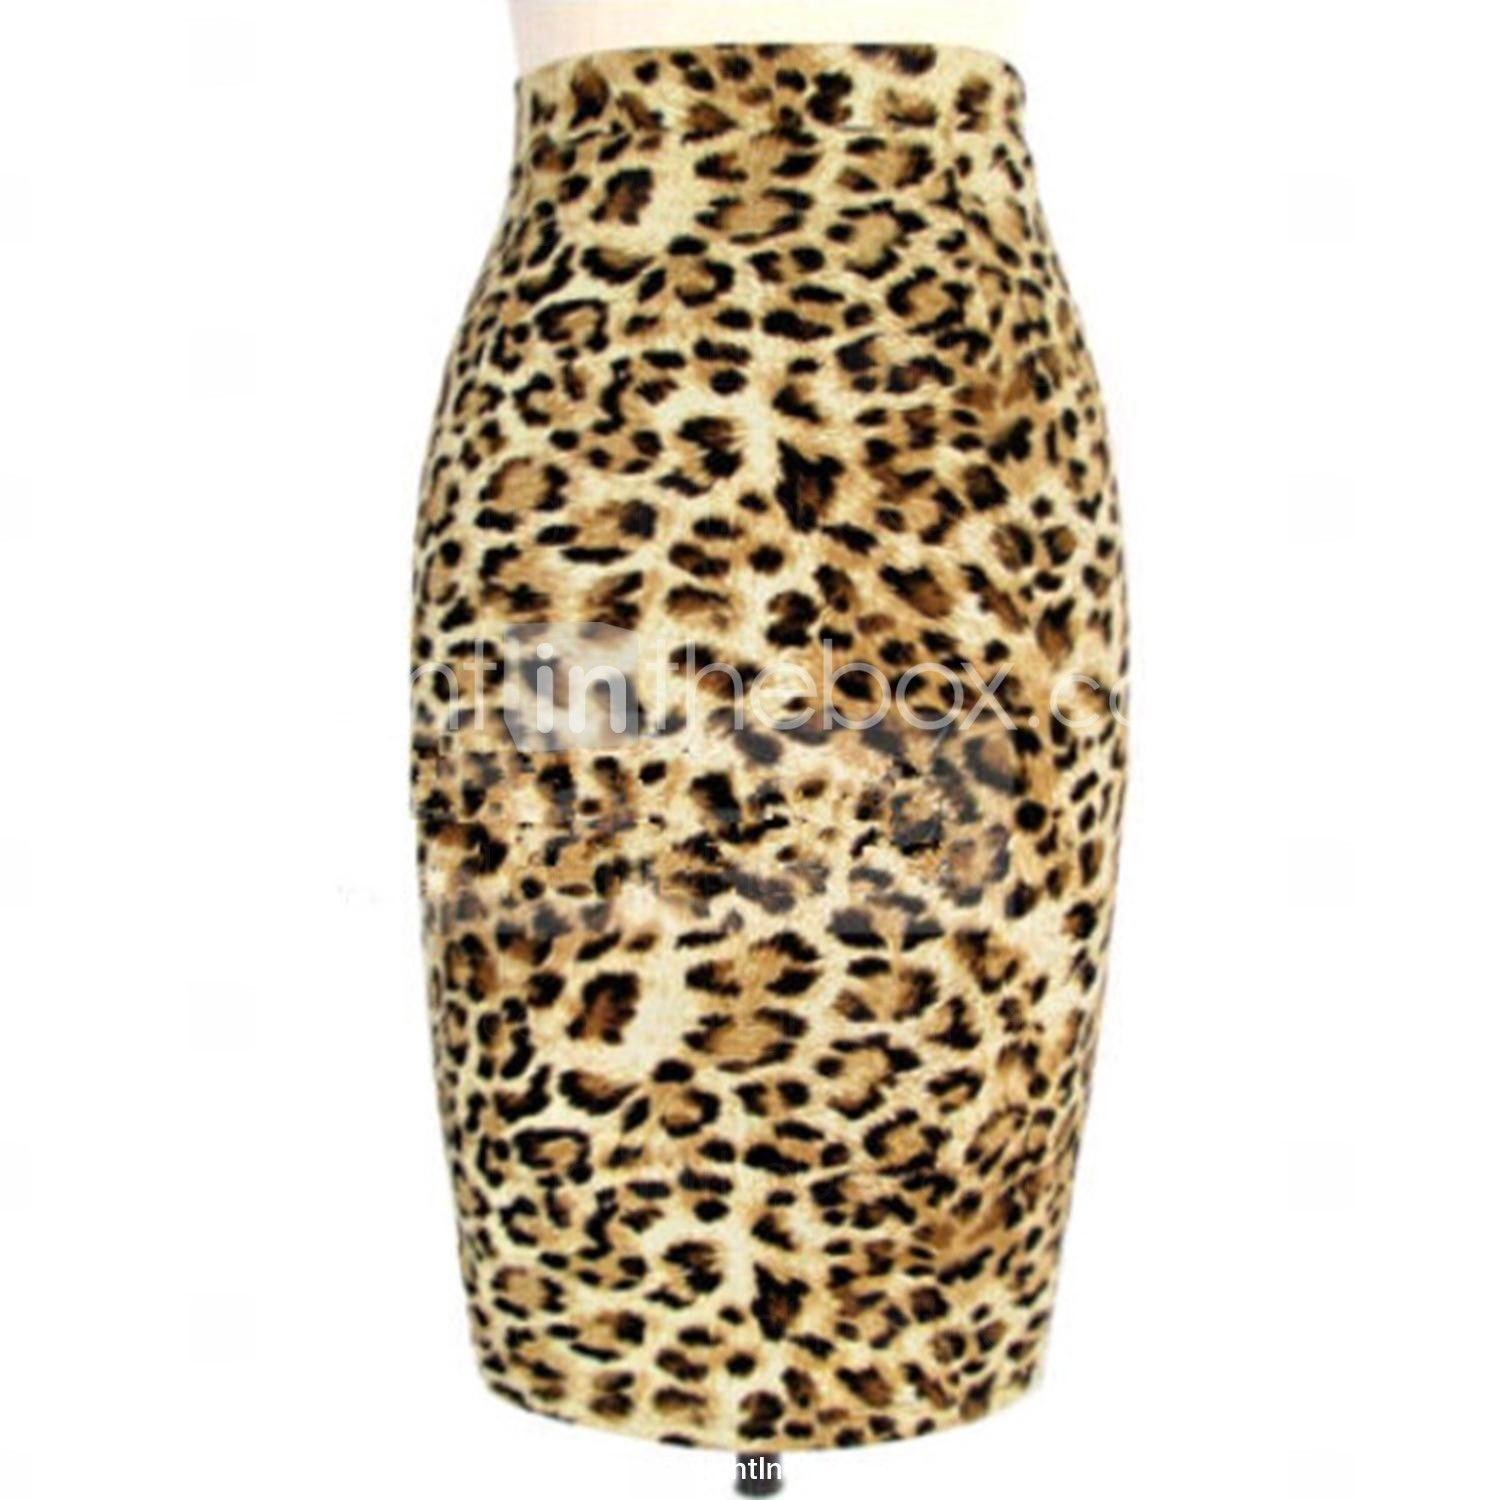 68c6b49a16e57 Women's Animal Print Celebrity Leopard Stretch High Waist Zip Cocktail Bodycon  Pencil Skirt - USD $ 16.79